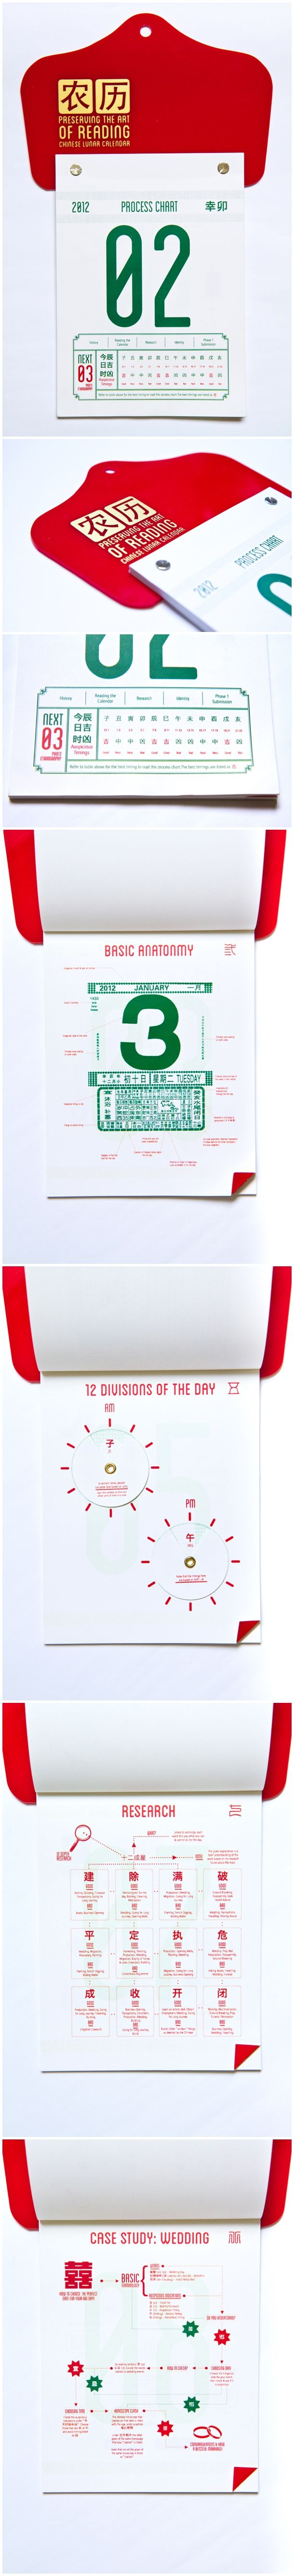 The Art of Reading Chinese Lunar Calendar Process via http://www.behance.net/gallery/The-Art-of-Reading-Chinese-Lunar-Calendar-Process/5249047